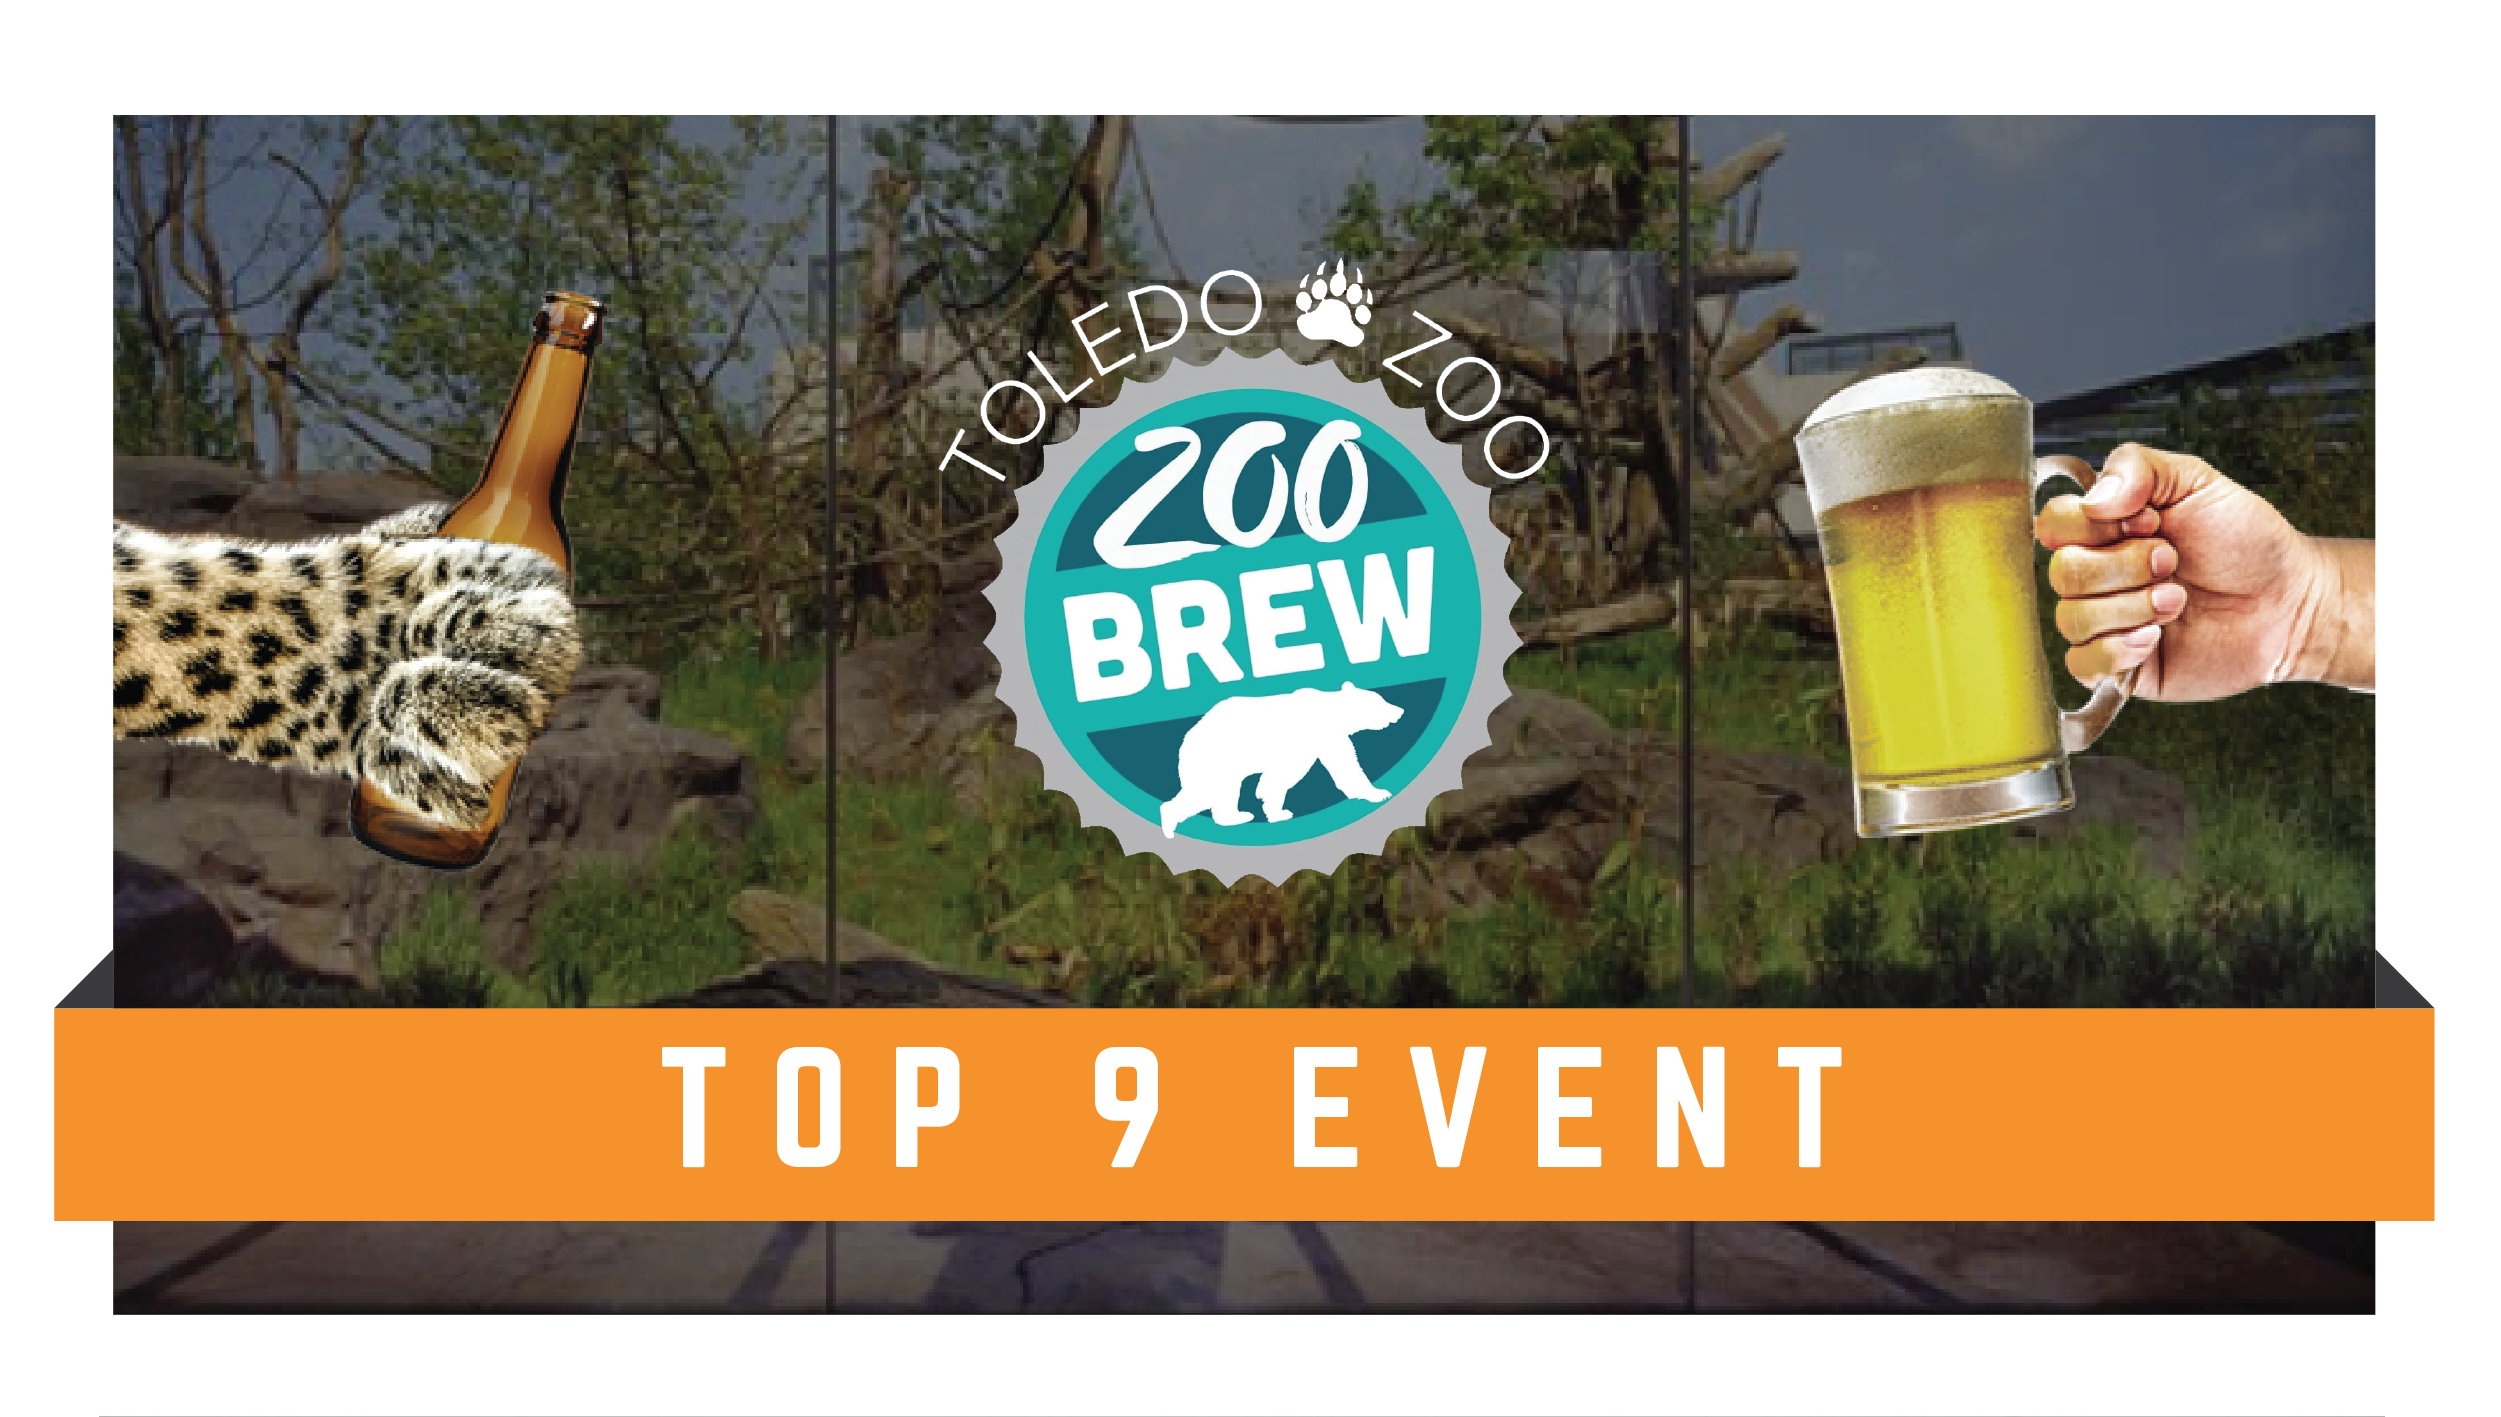 toledo zoo brew explore 419